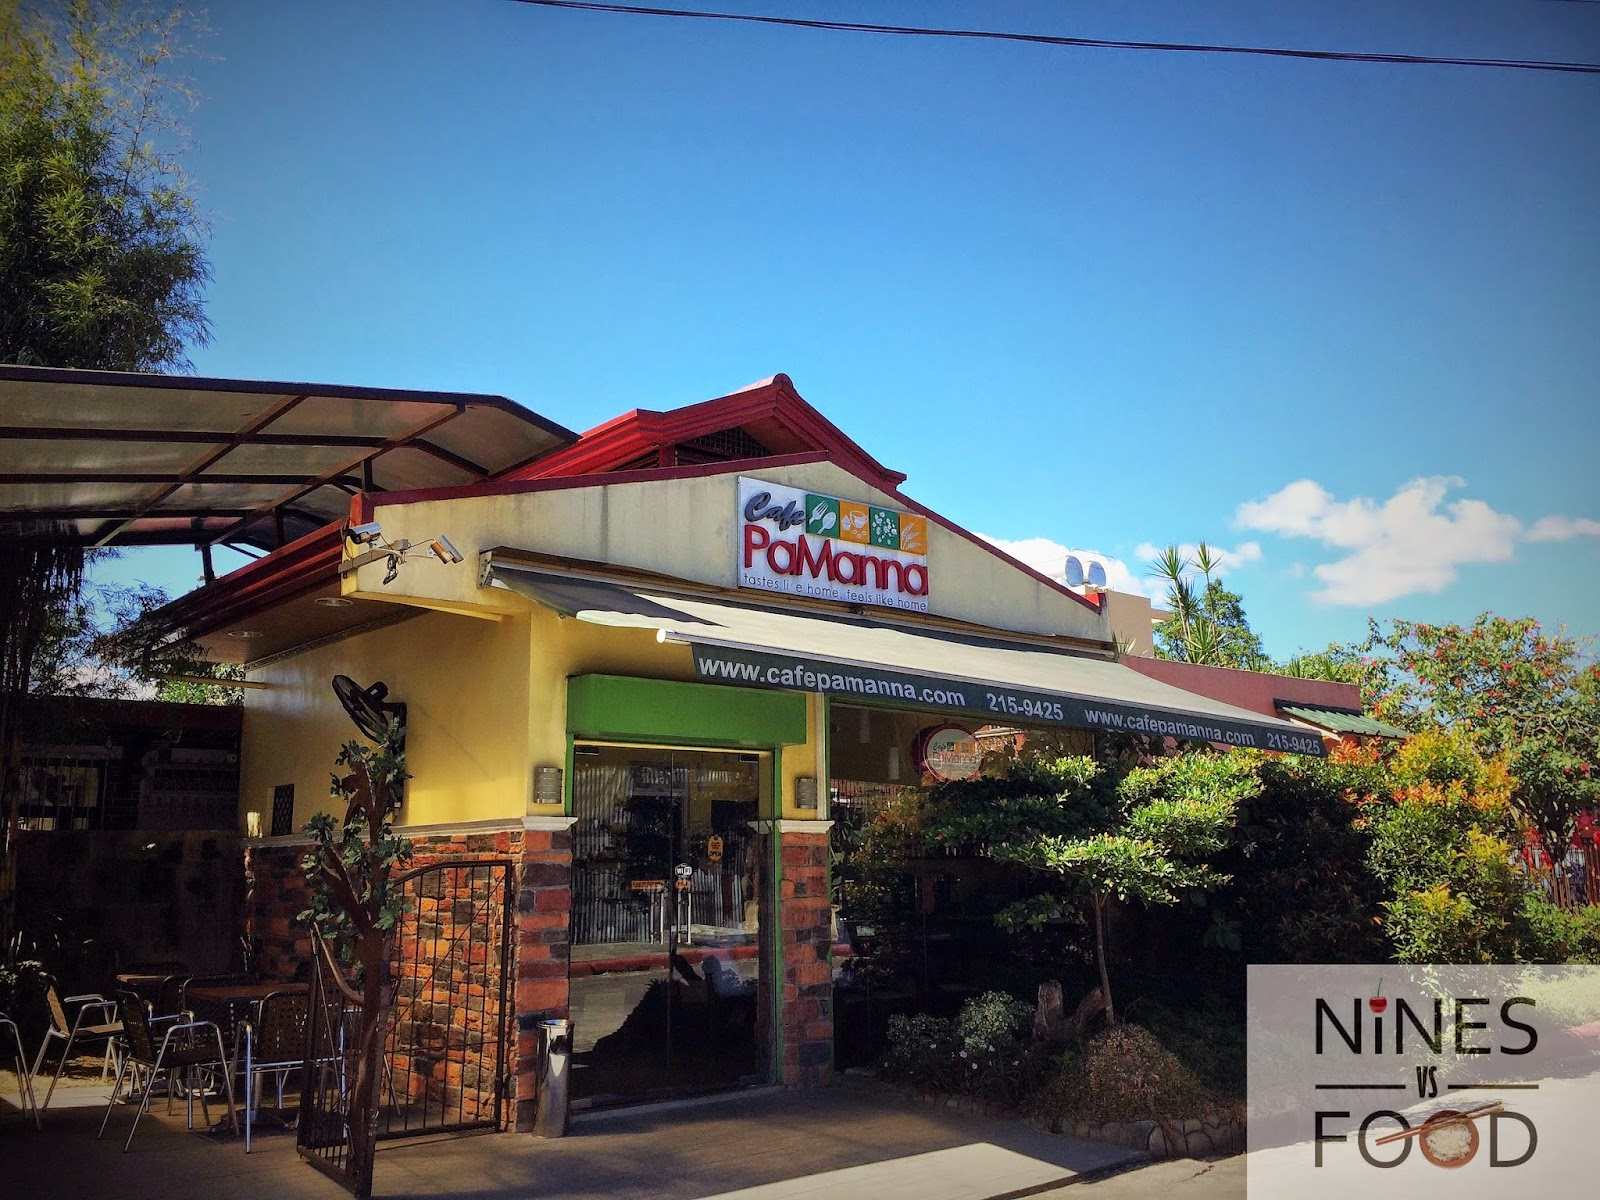 Nines vs. Food - Cafe PaManna Fairview-1.jpg